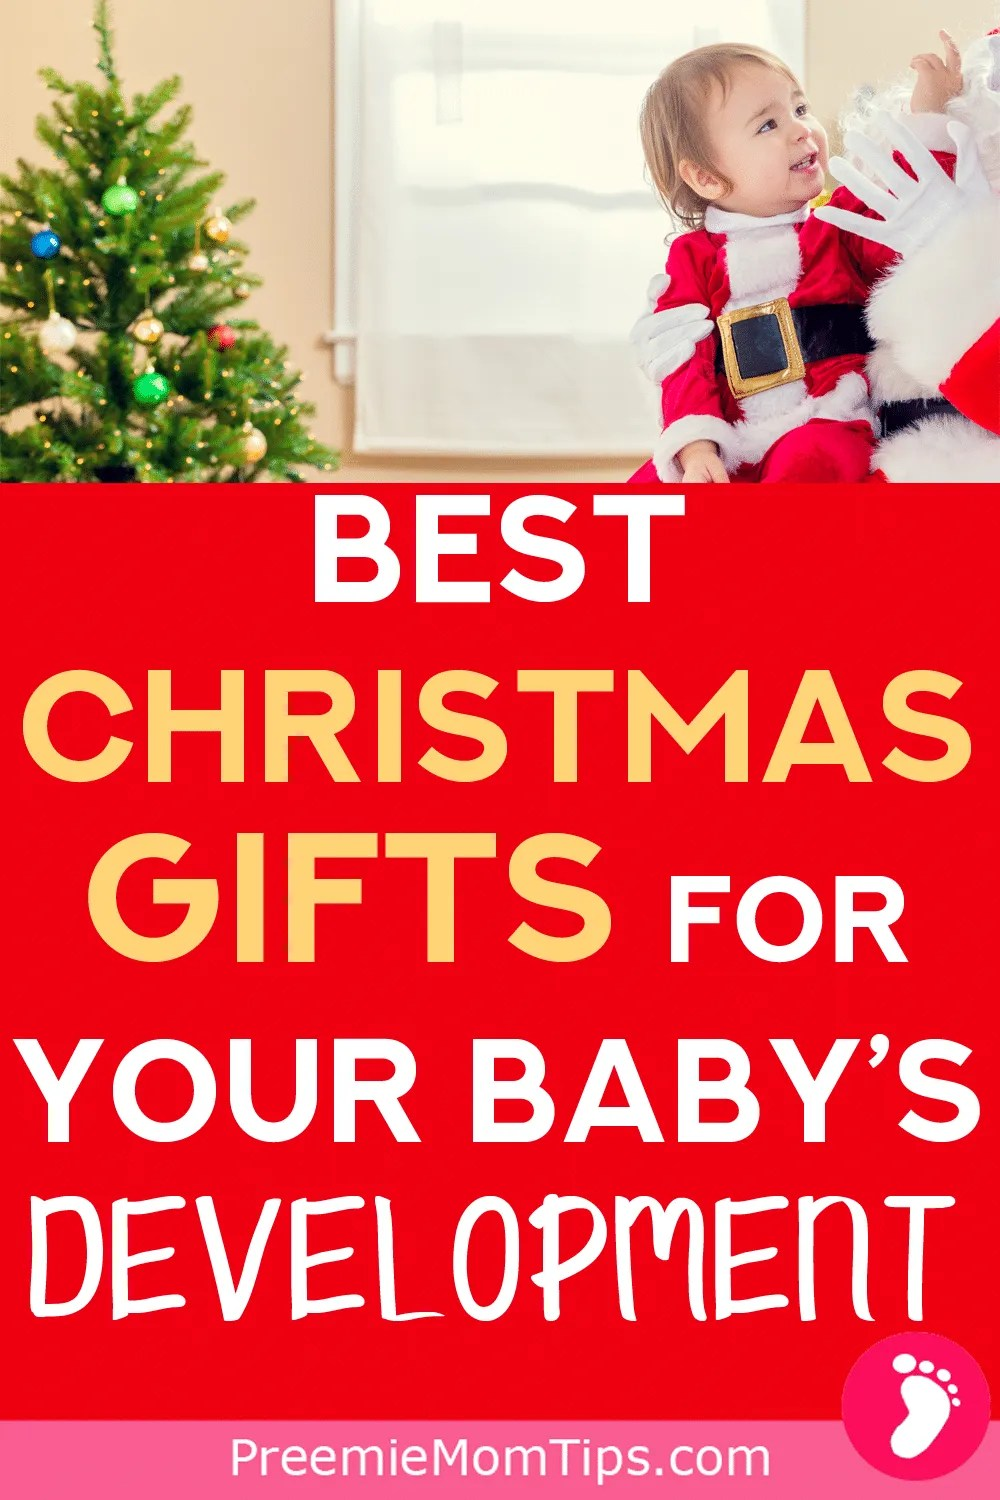 Celebrate your baby's first Holiday season with these gift ideas that will help your baby's development month by month